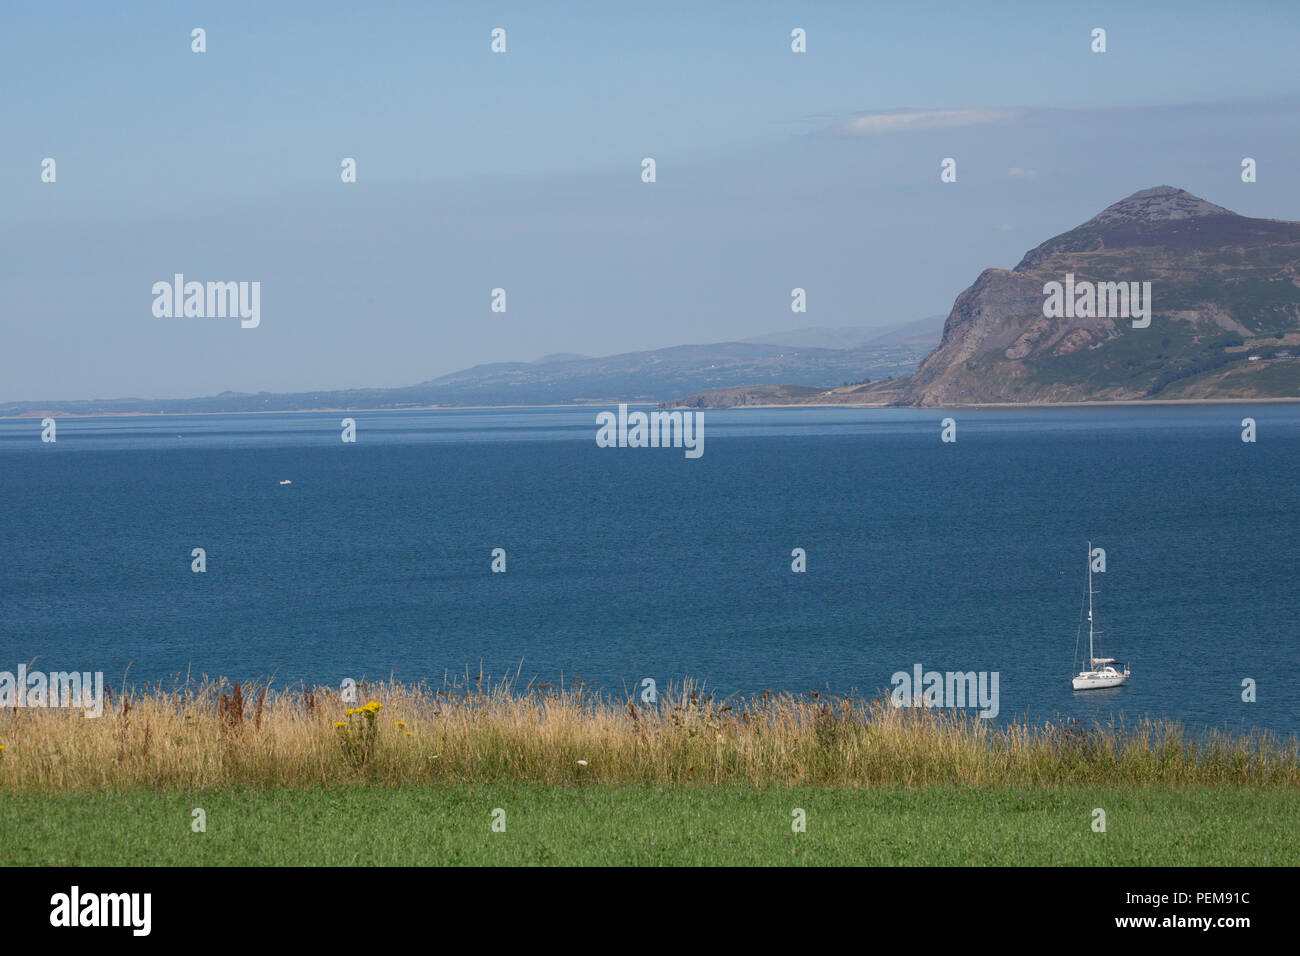 Morfa Nefyn, Llyn Peninsula, North Wales Stock Photo